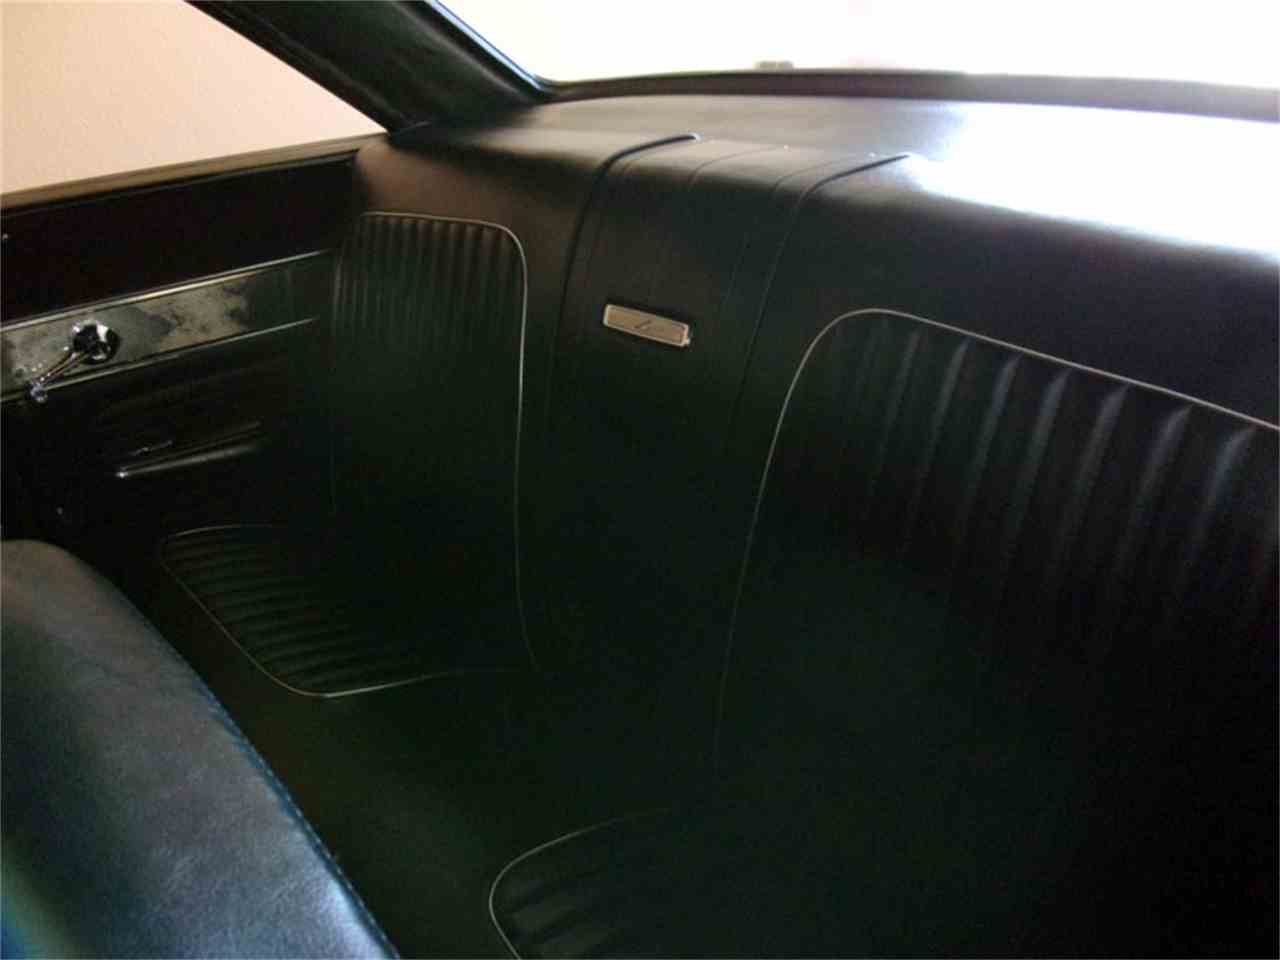 Large Picture of '64 Ford Falcon Futura - $28,500.00 Offered by a Private Seller - M4K0